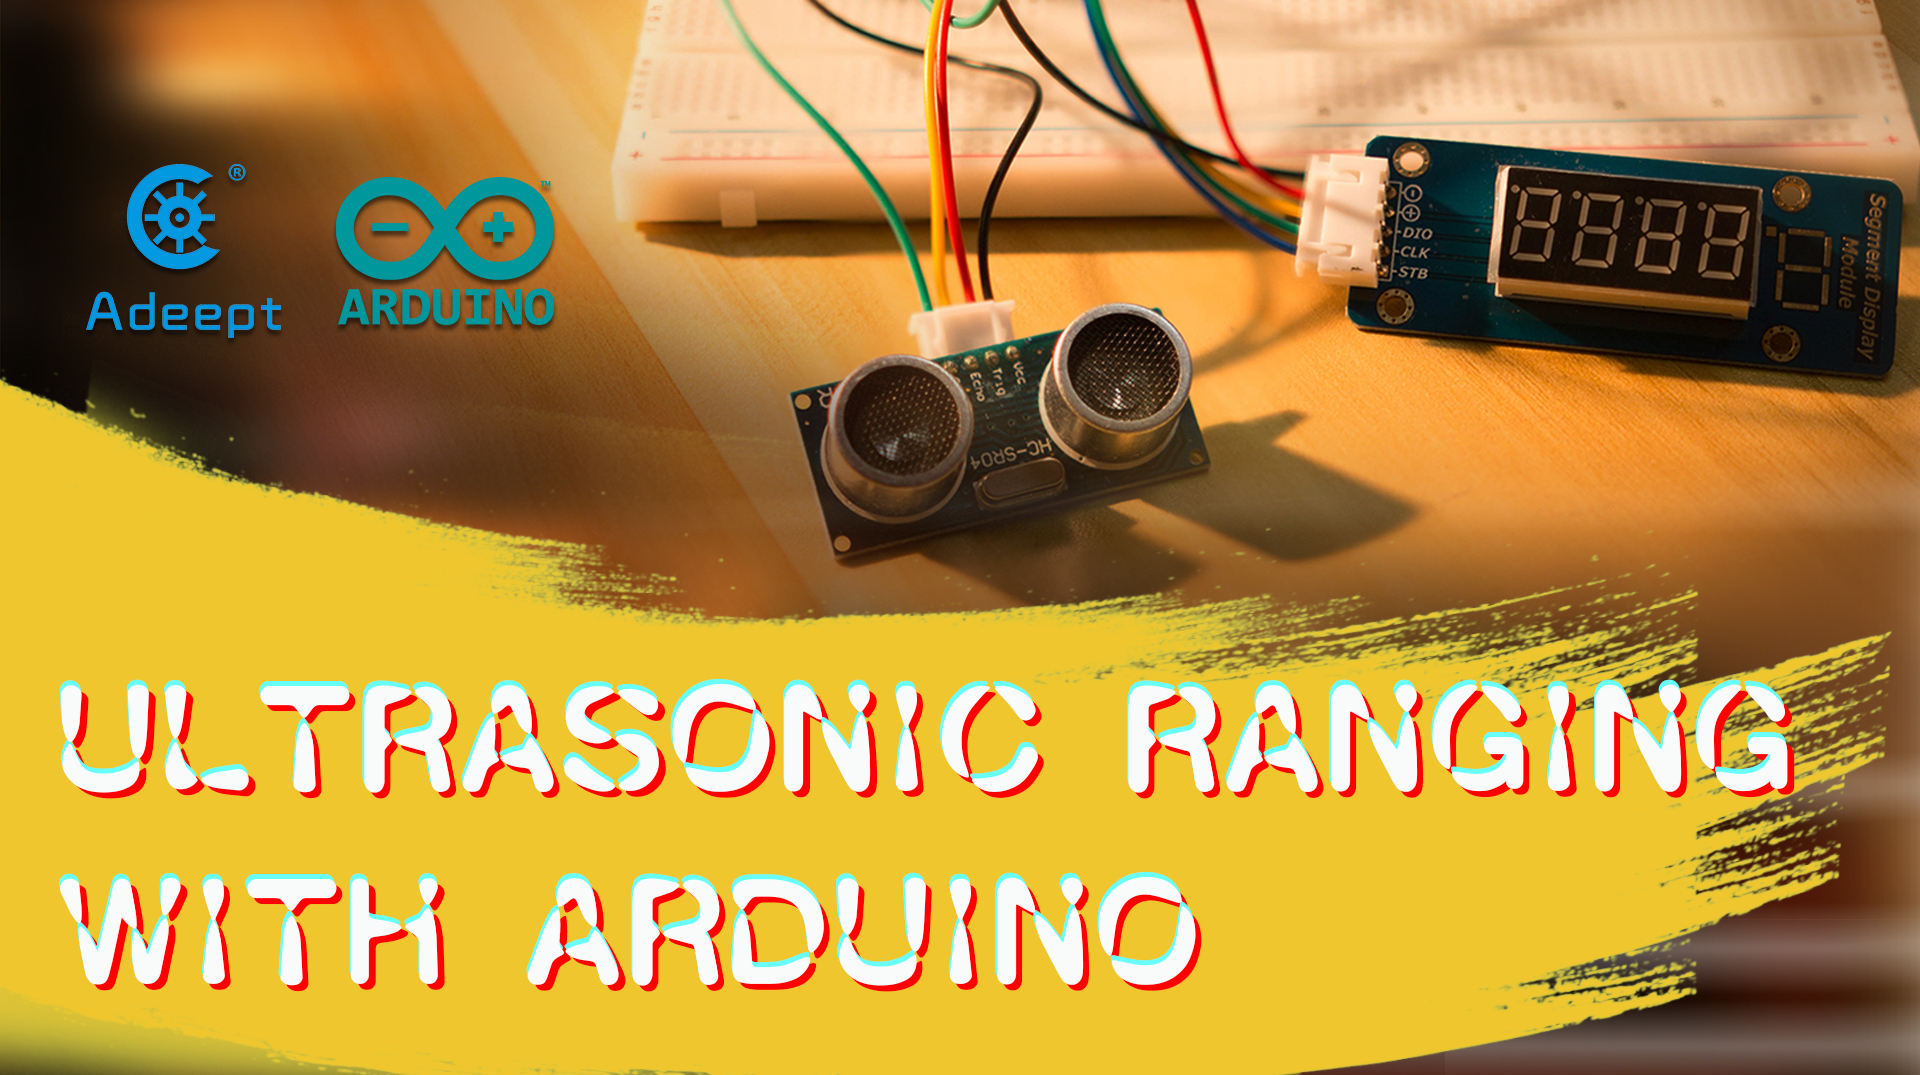 [Arduino] Achieve ultrasonic ranging, stable performance and accurate measuring distance